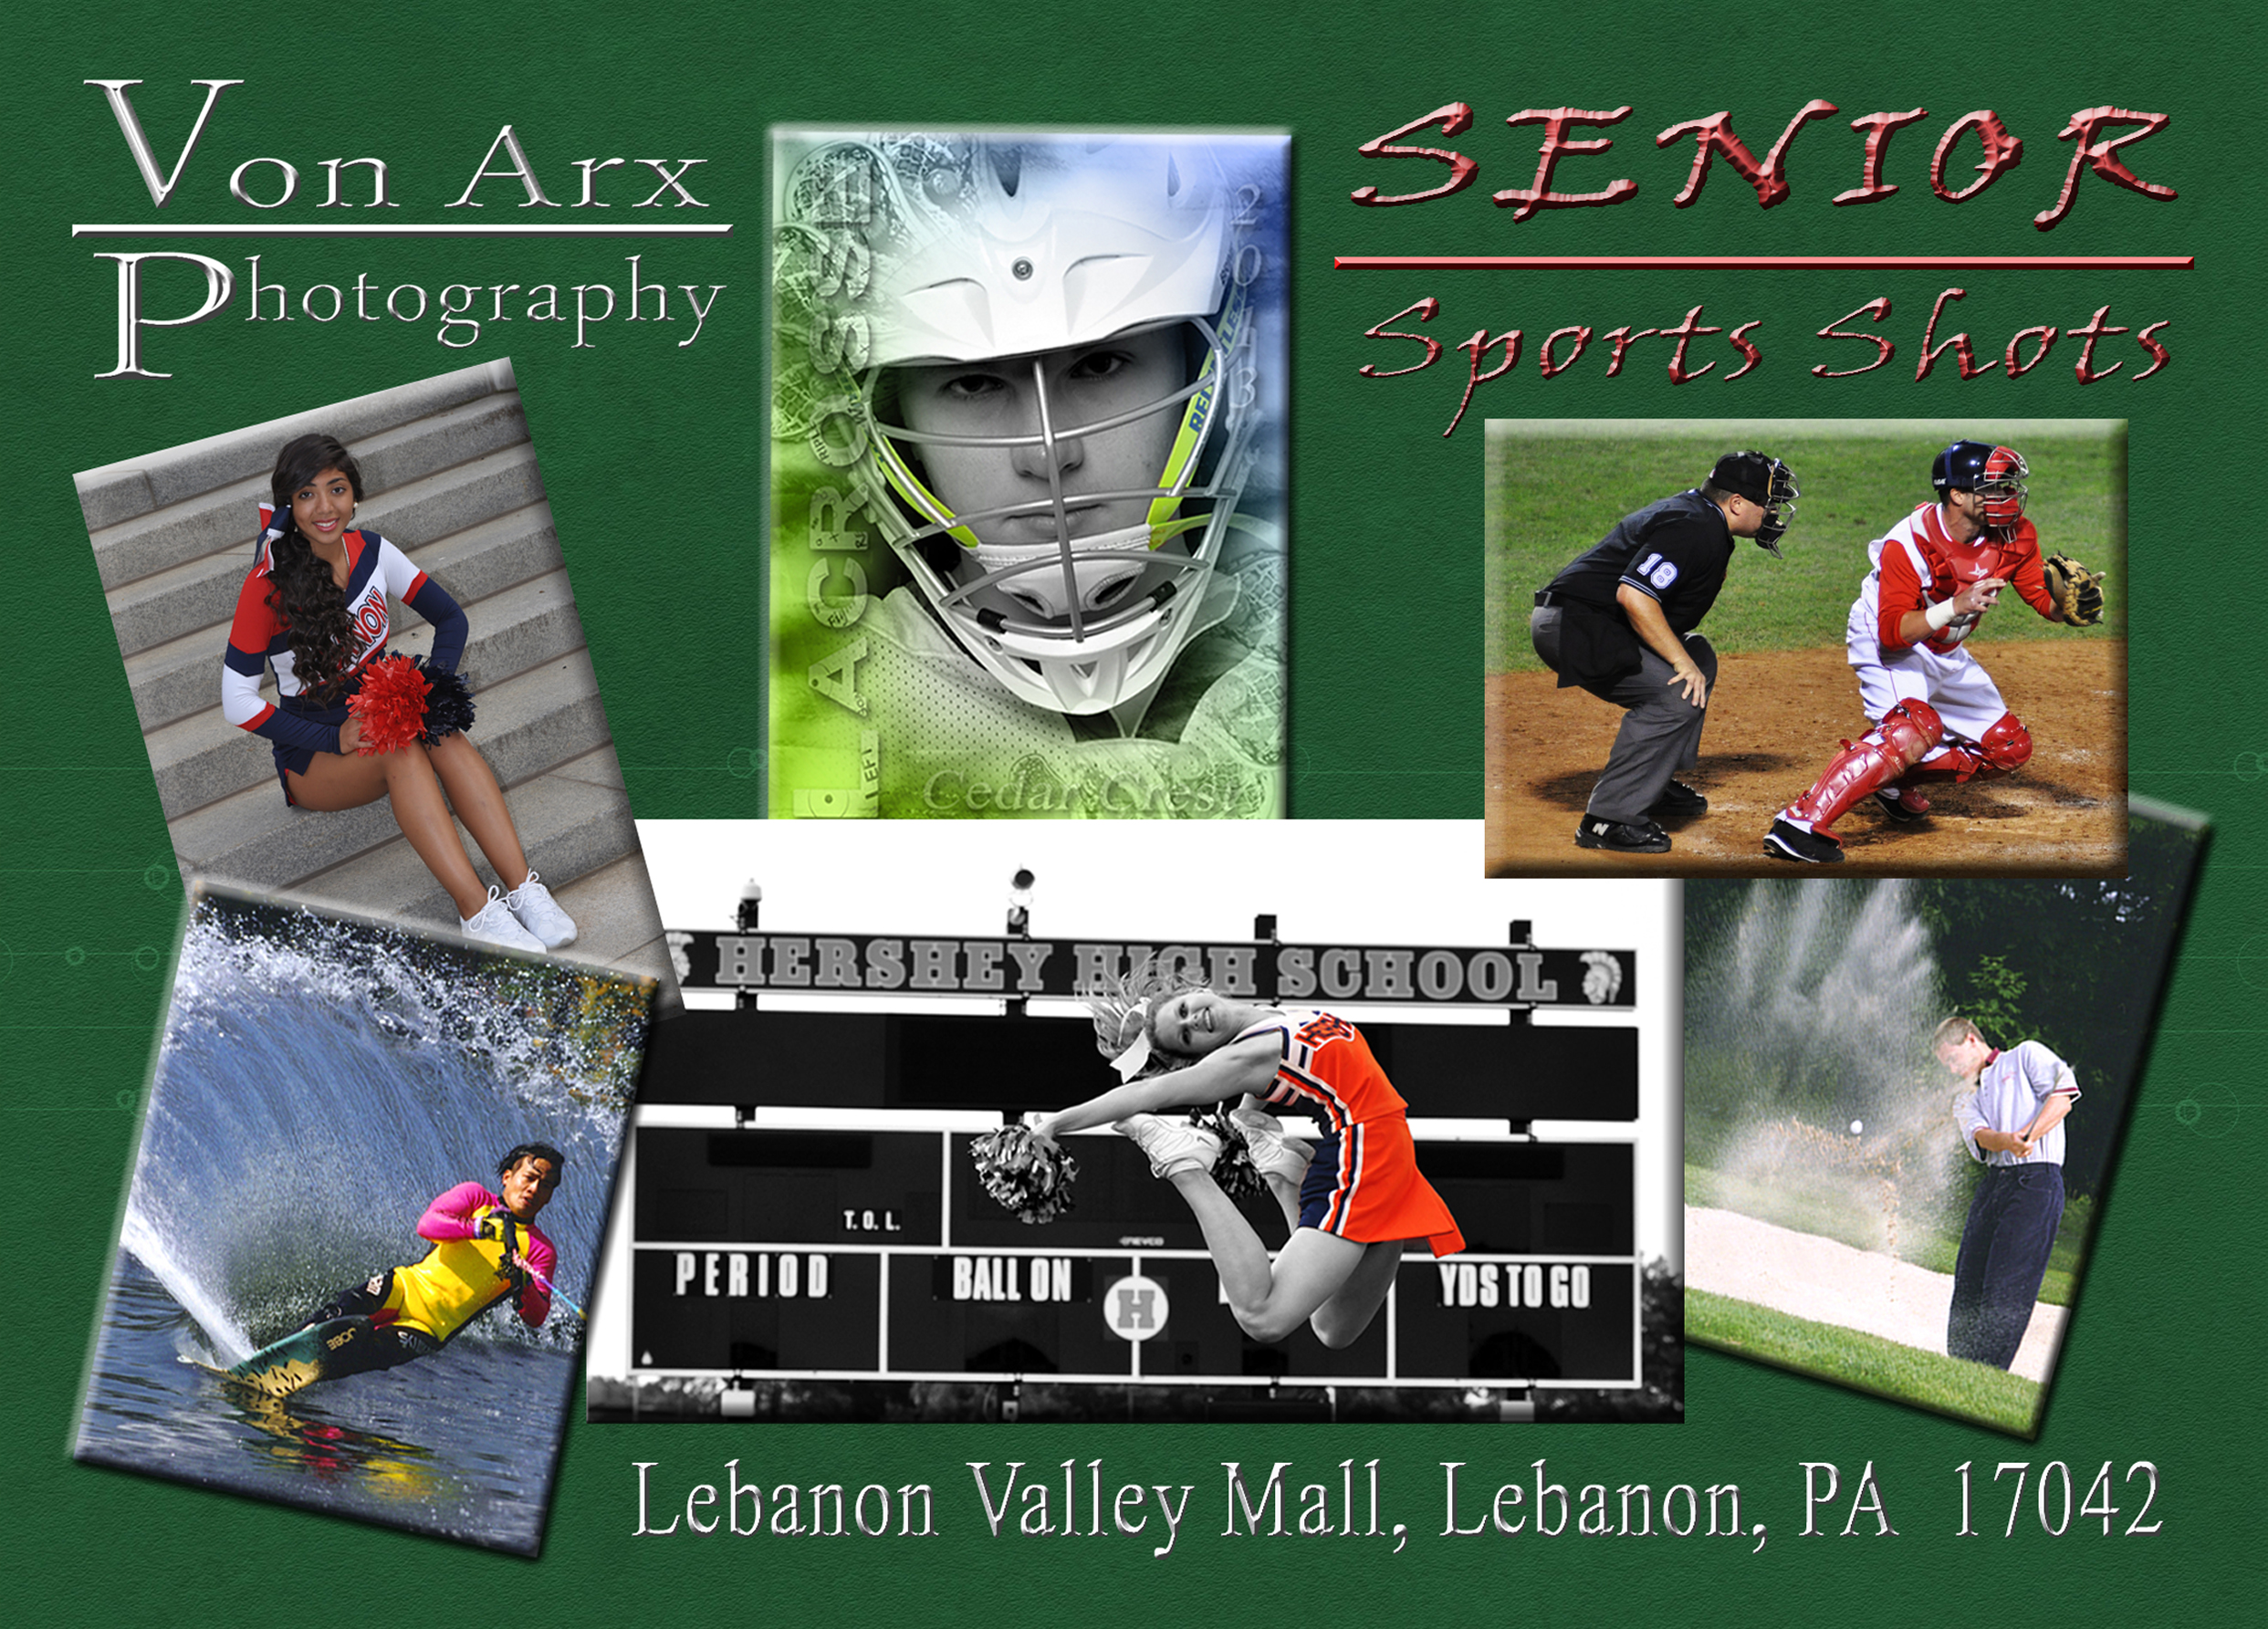 pSenior Sports Shots Print 5x7.jpg